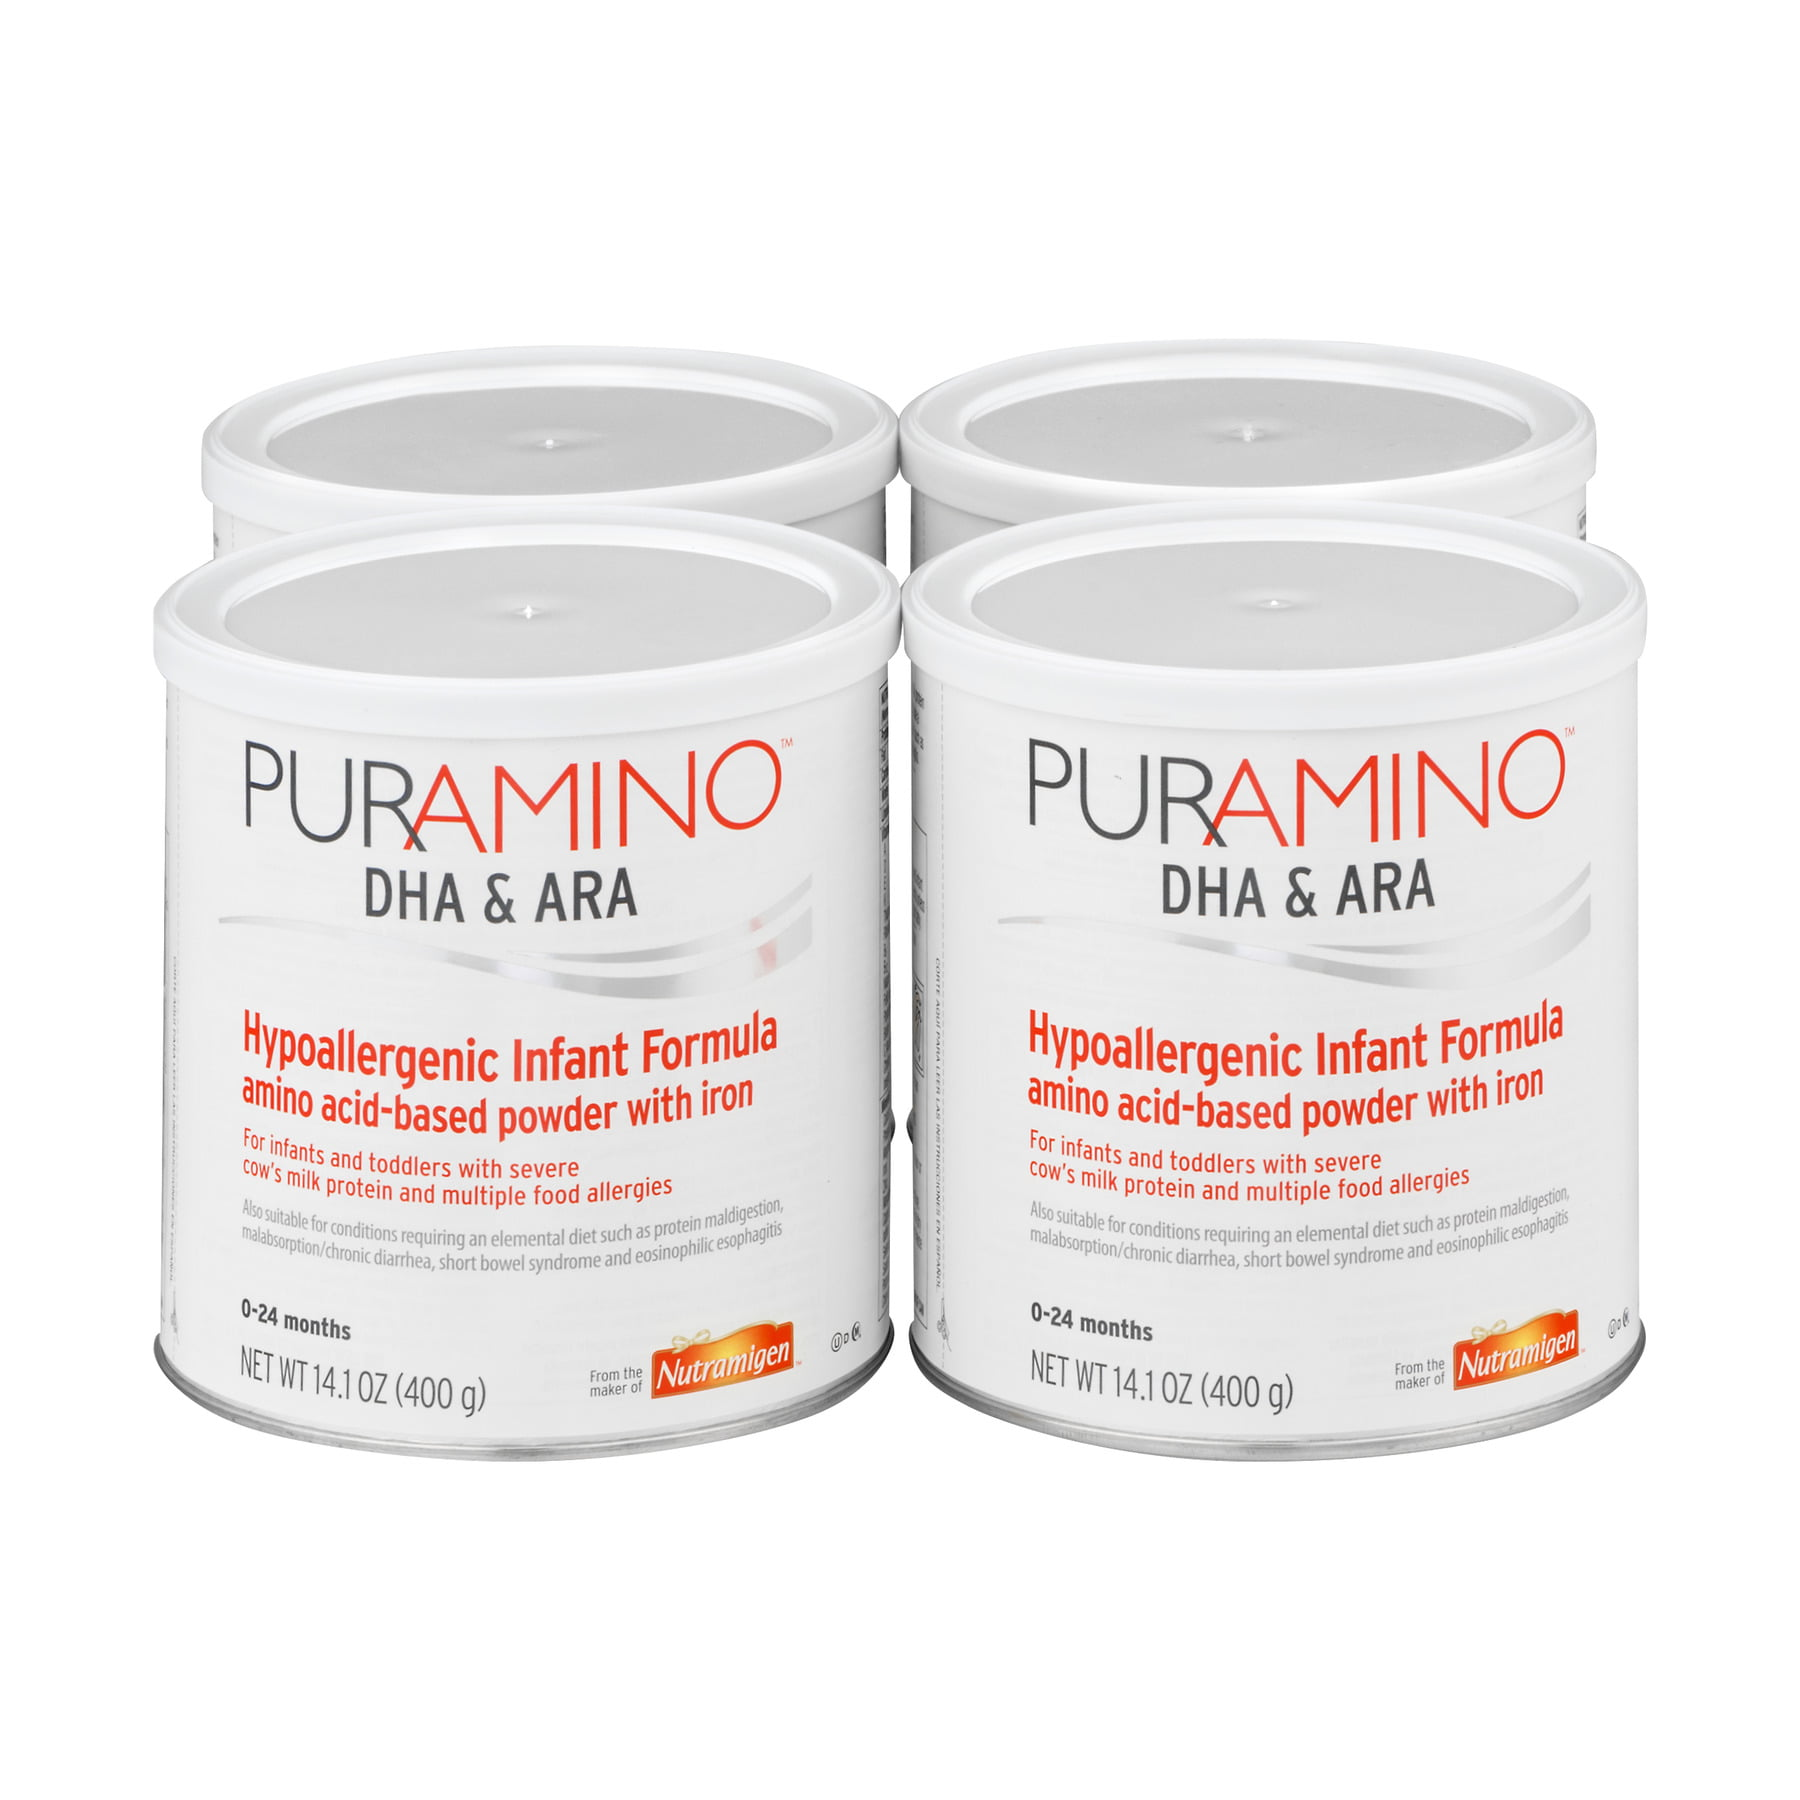 PurAmino DHA and ARA Hypoallergenic Infant Formula, Powder, 14.1 oz Cans, Case of 4 by PurAmino